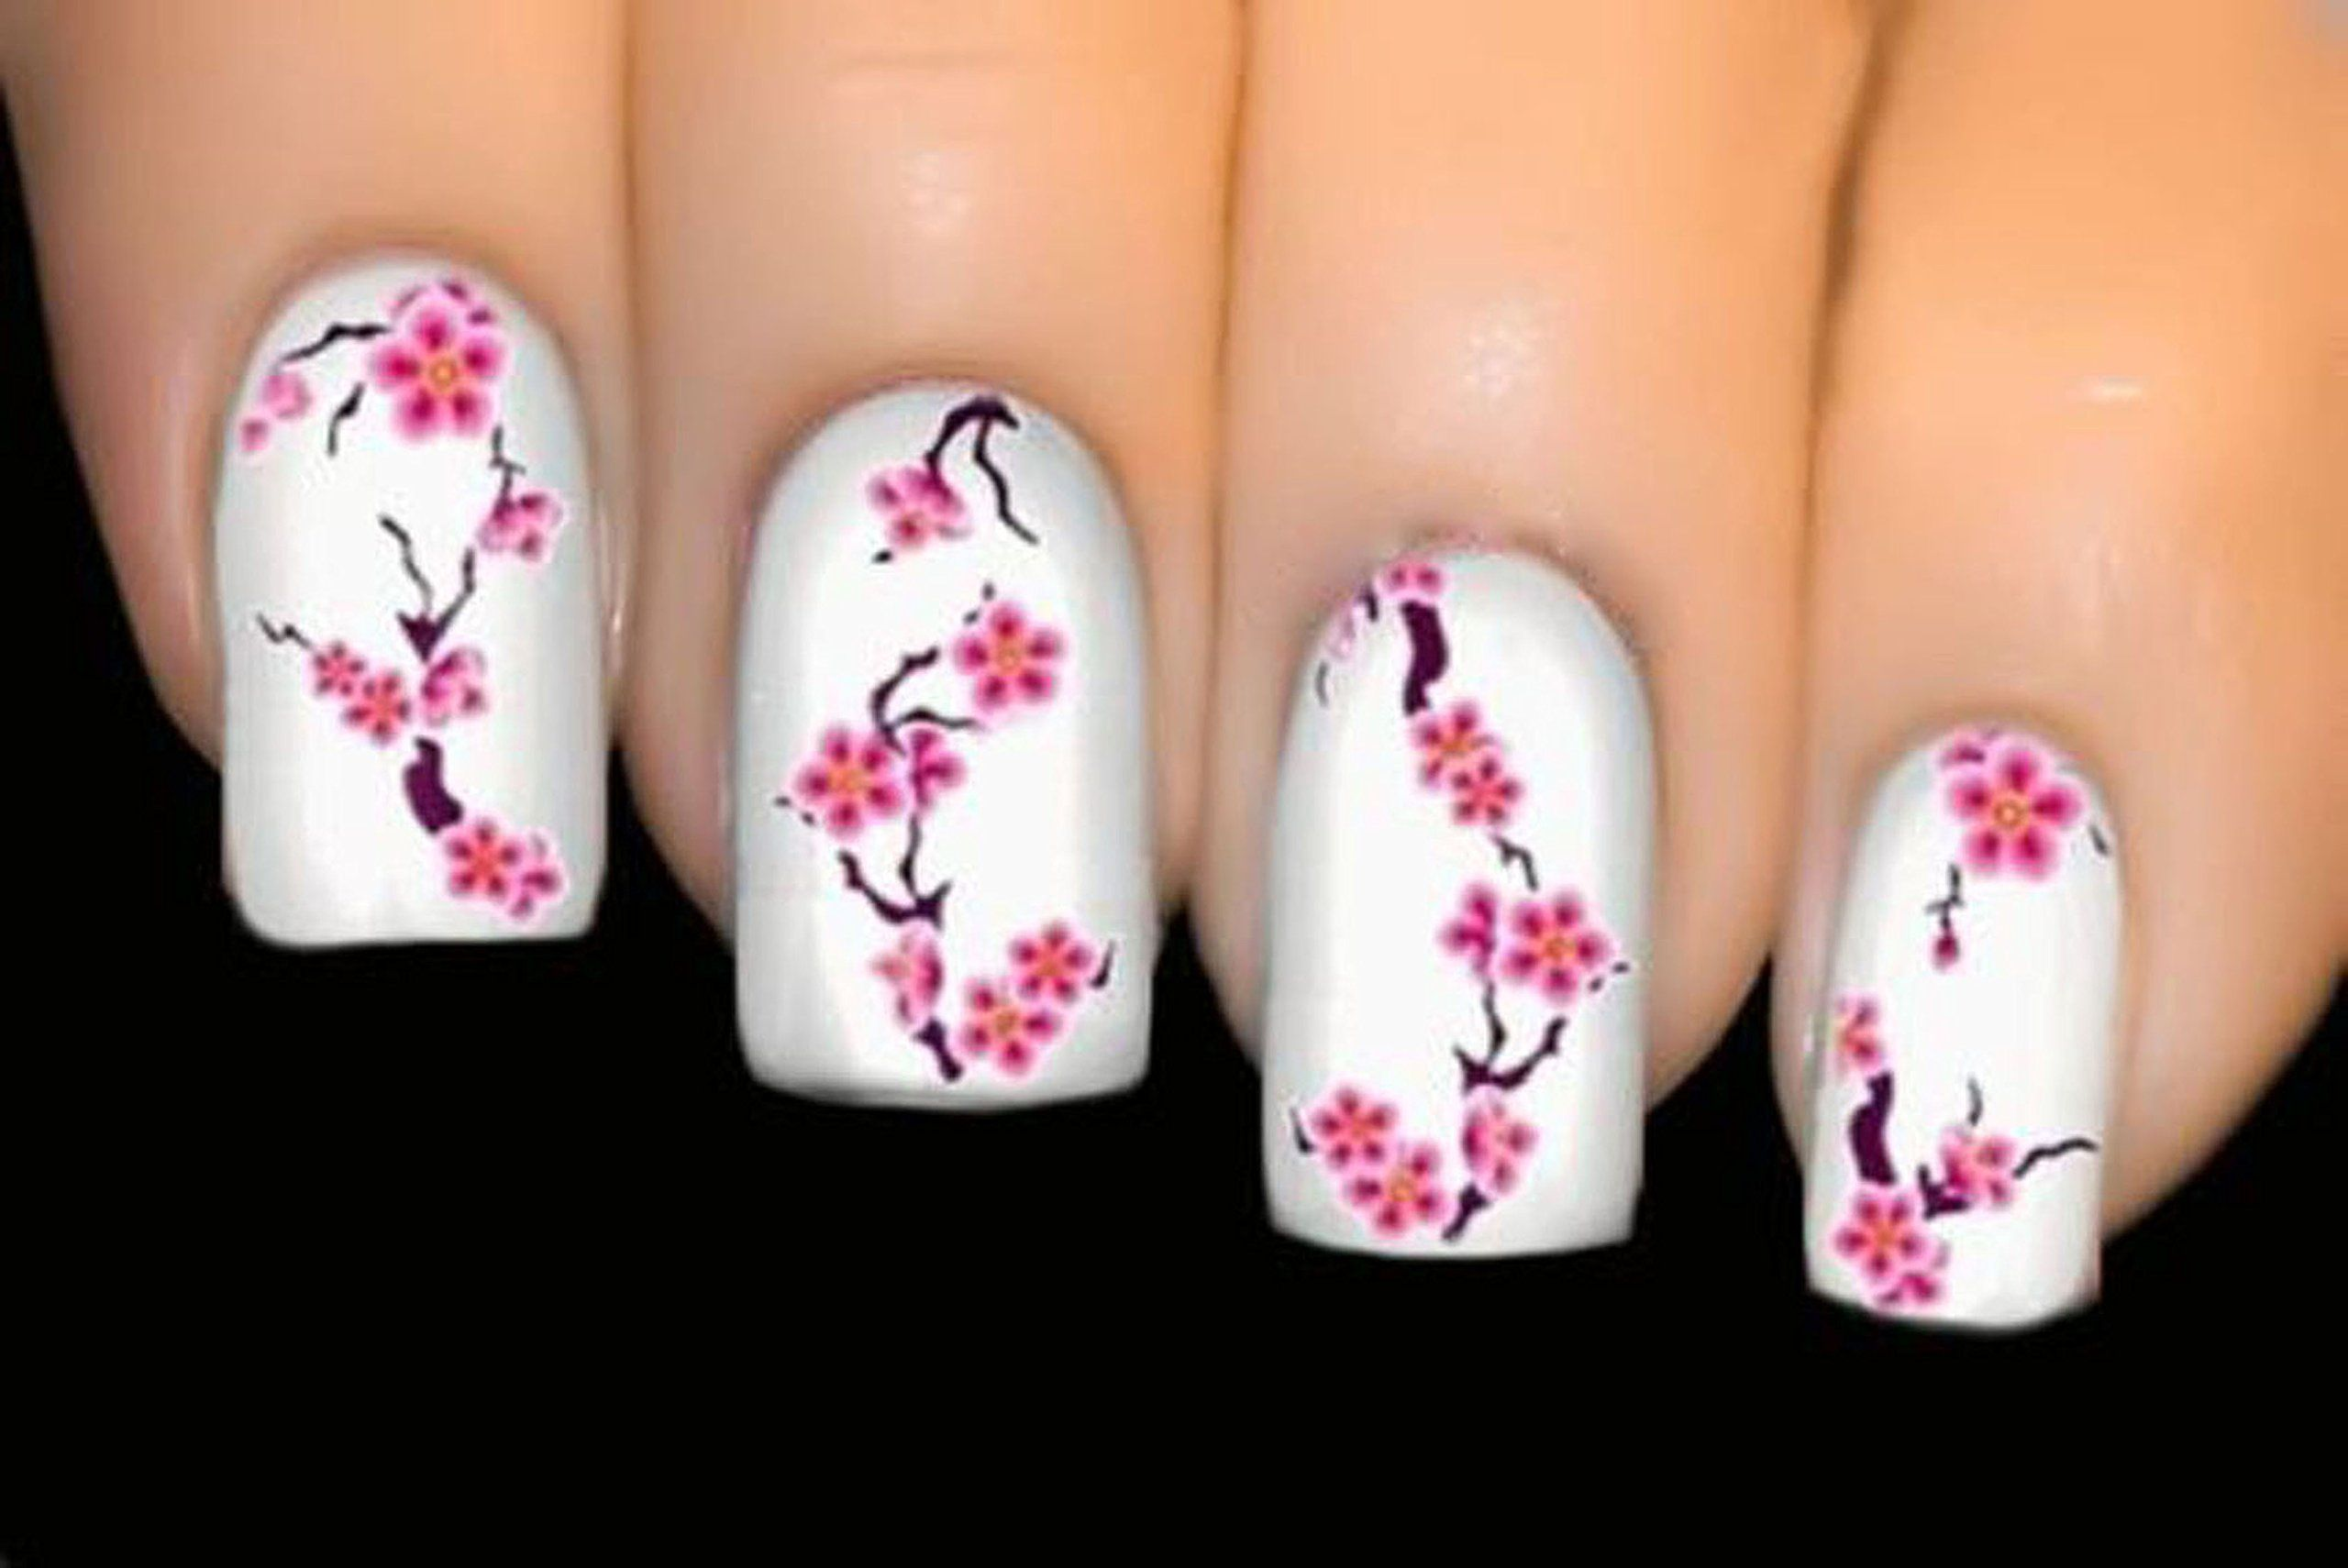 Robot Check Cherry Blossom Nails Art Cherry Blossom Nails Flower Nail Art